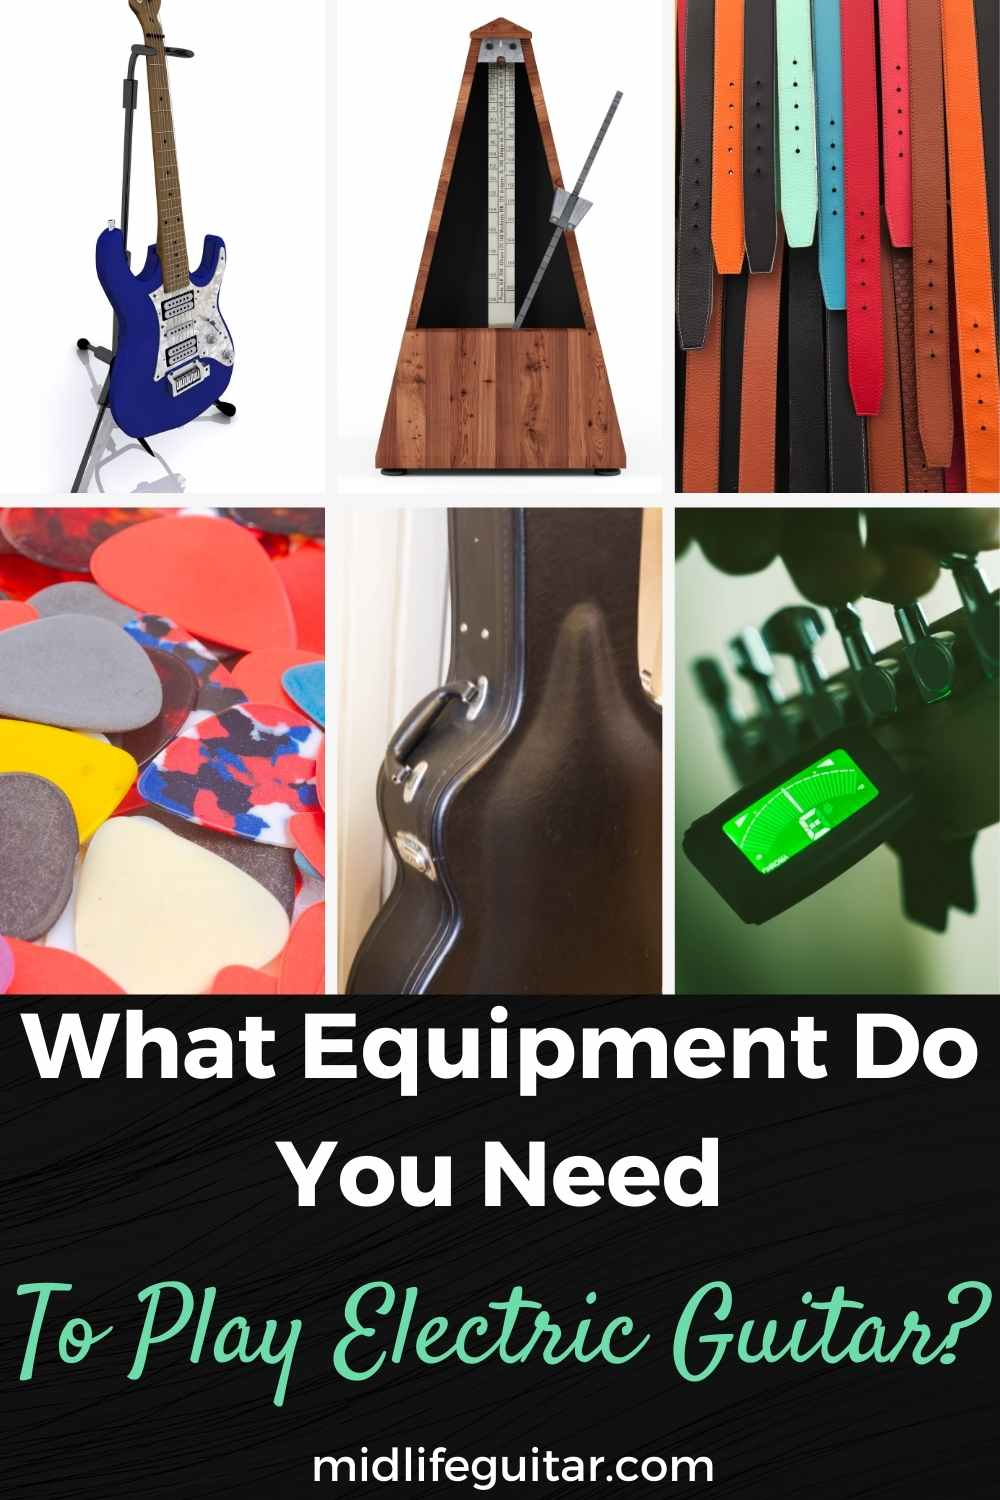 What equipment do you need to play electric guitar?